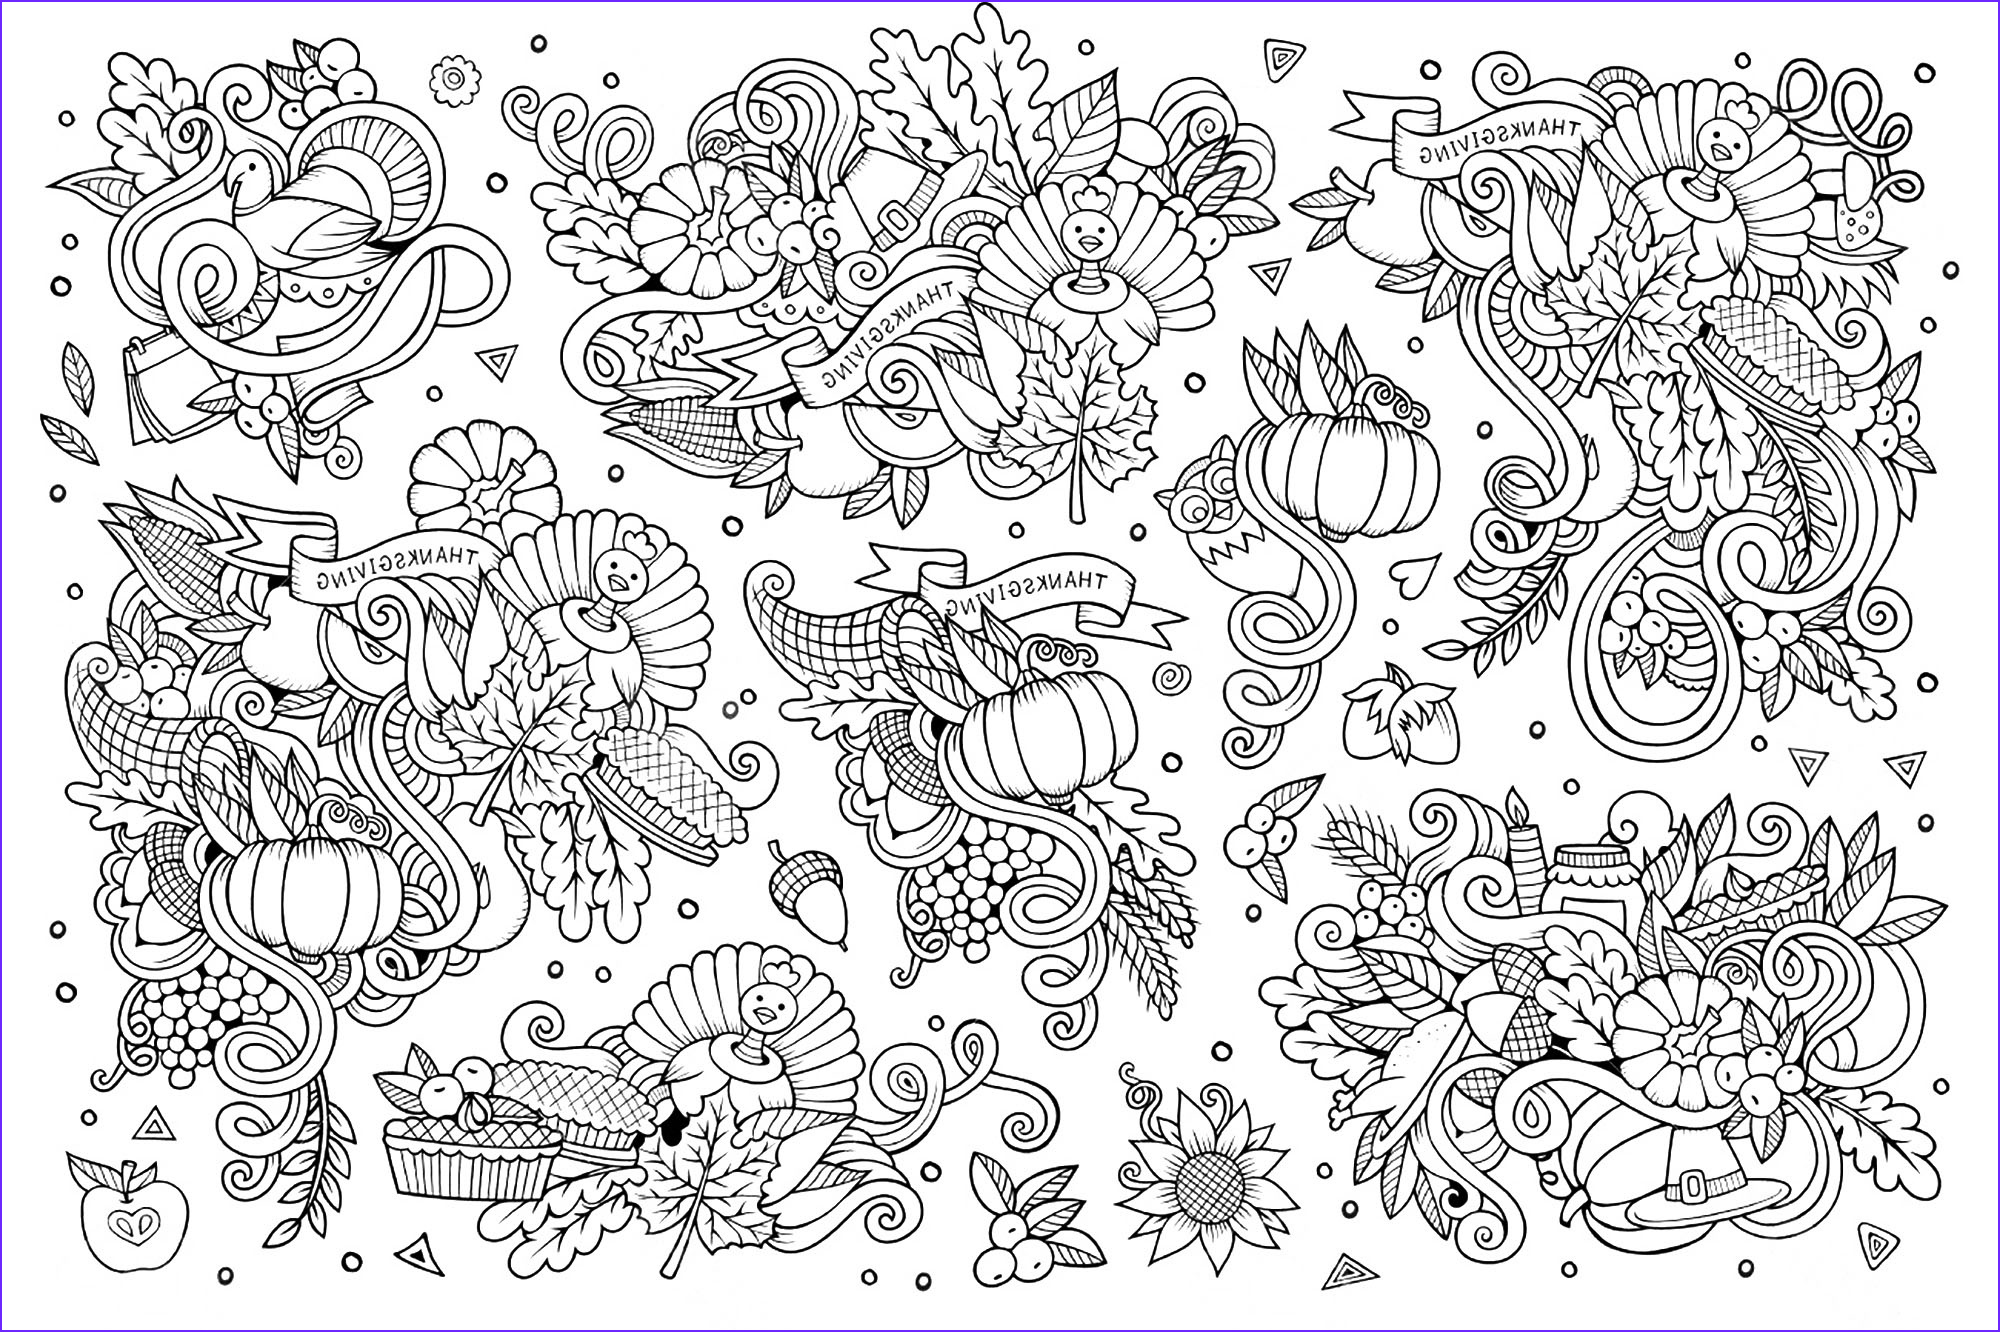 Coloring Book Page for Adults to Print Elegant Gallery Thanksgiving Doodle 3 Thanksgiving Coloriages